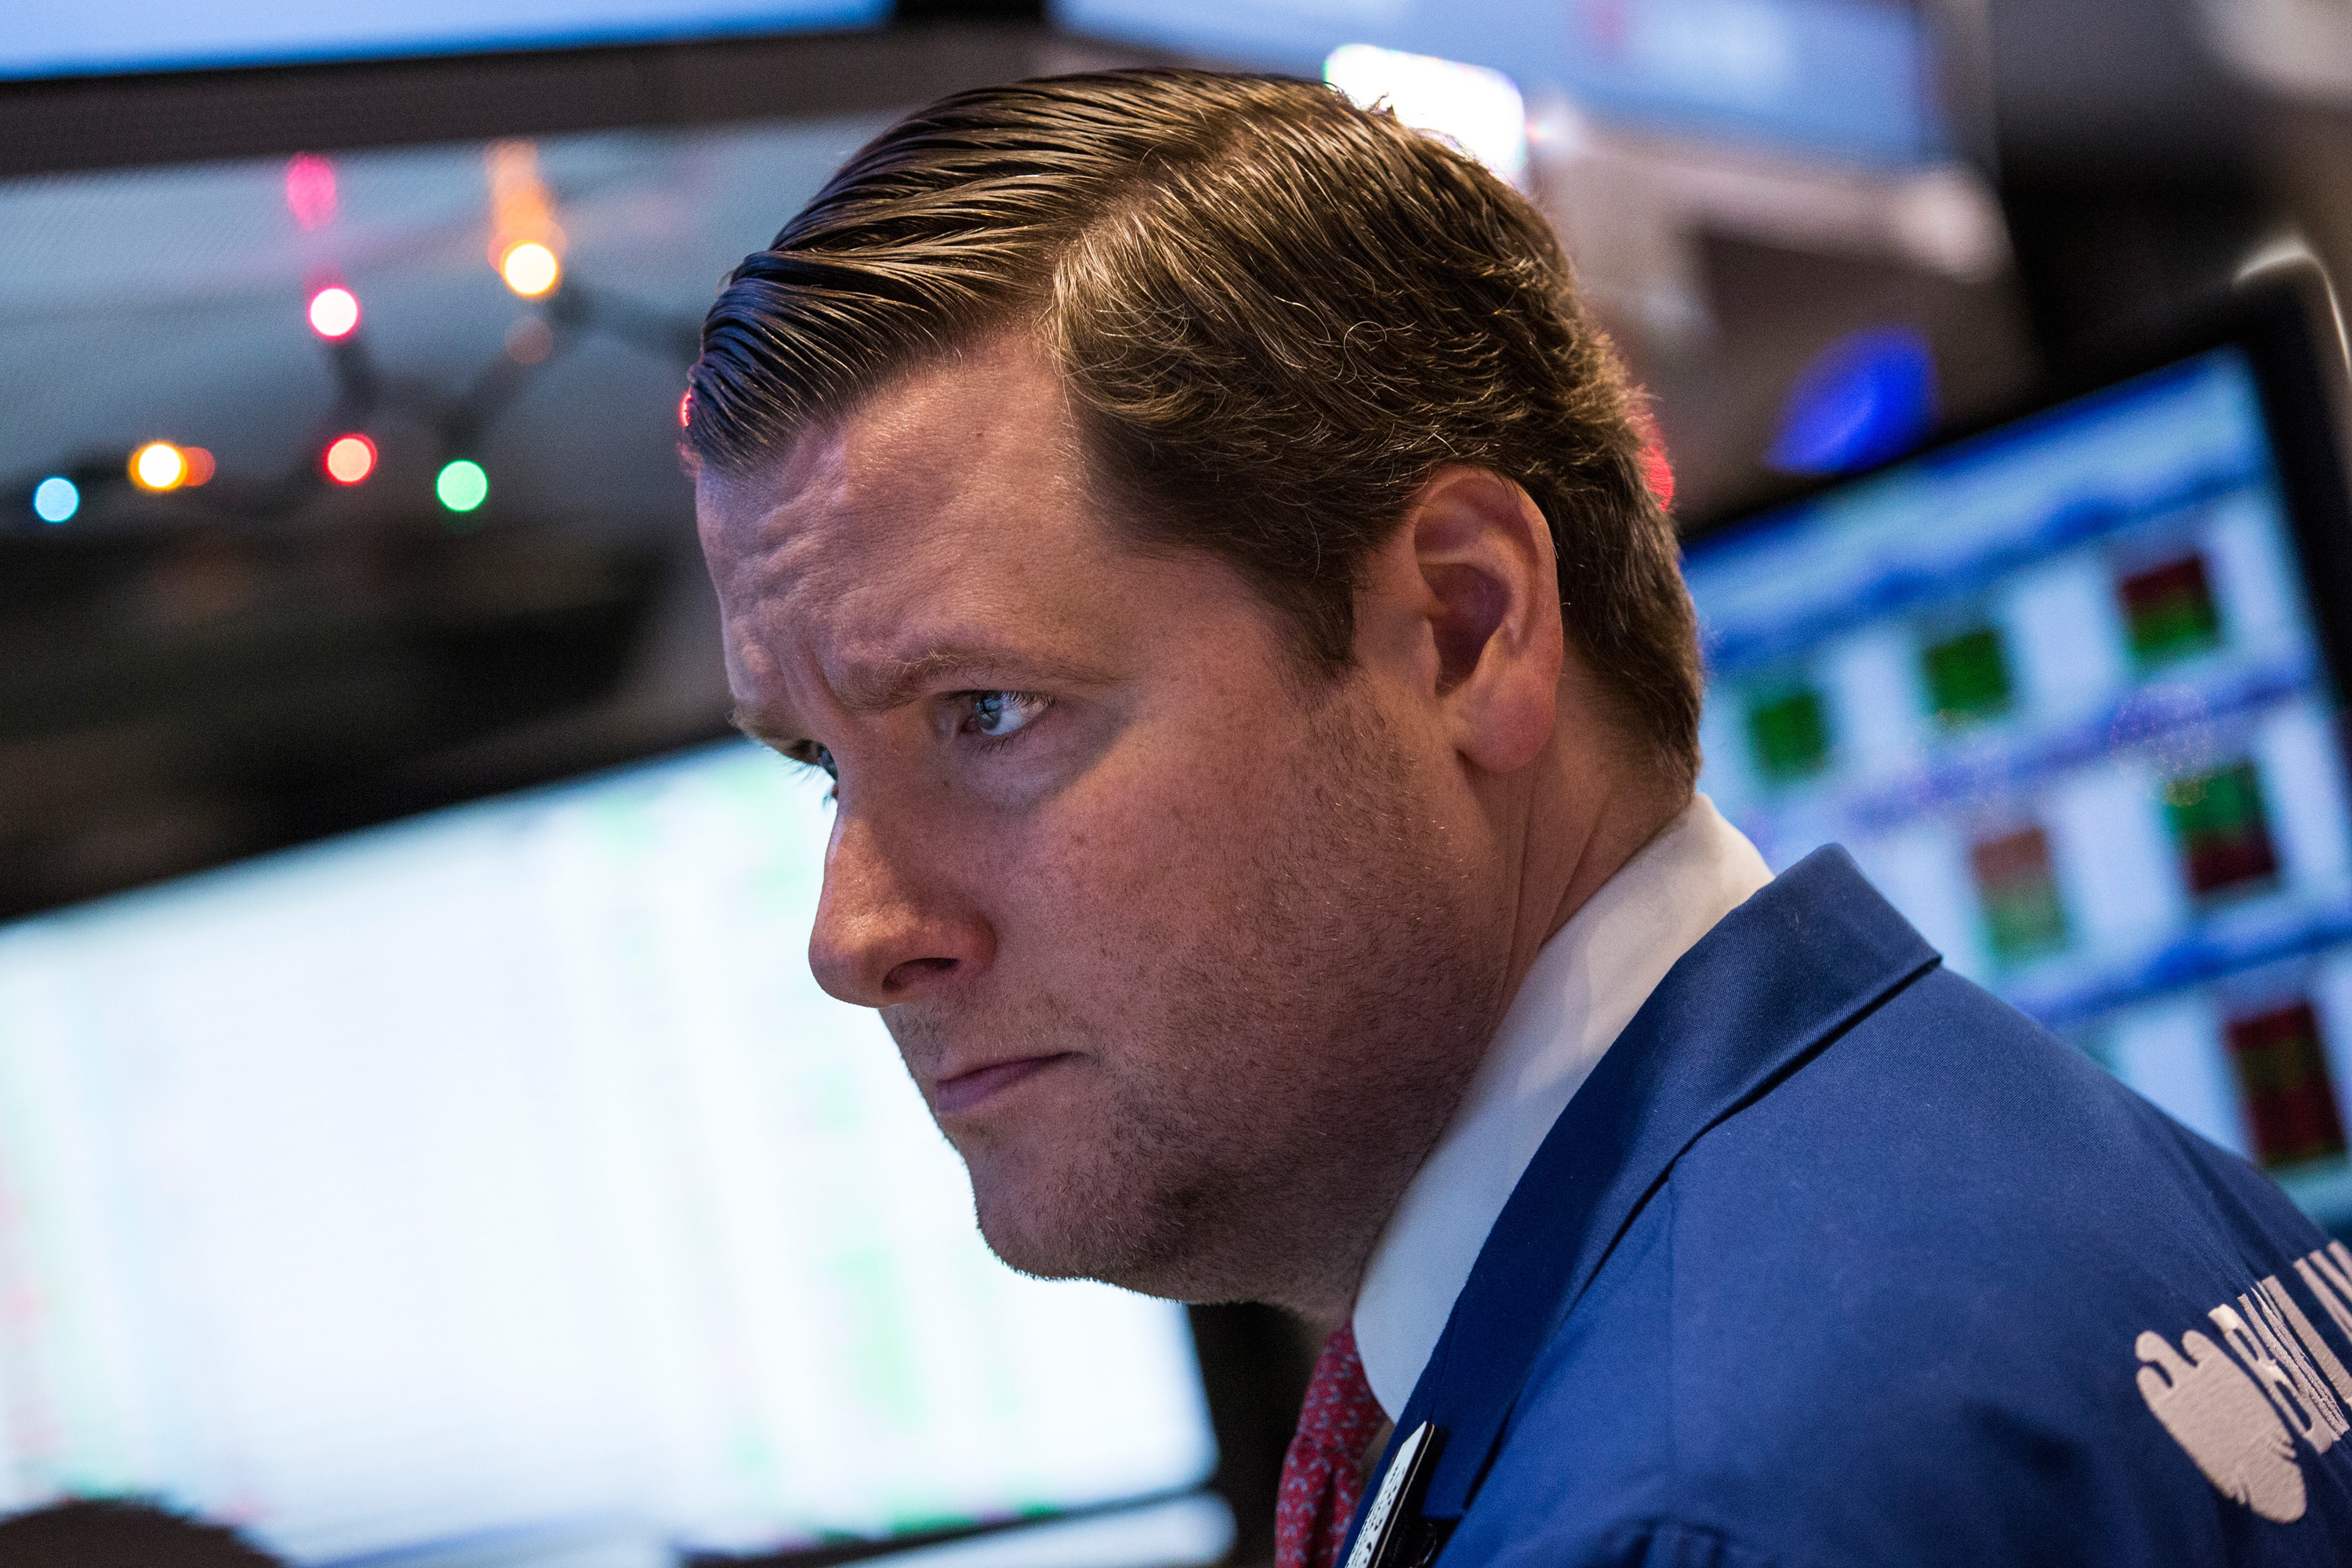 A trader on the floor of the New York Stock Exchange on Dec. 22, 2014.